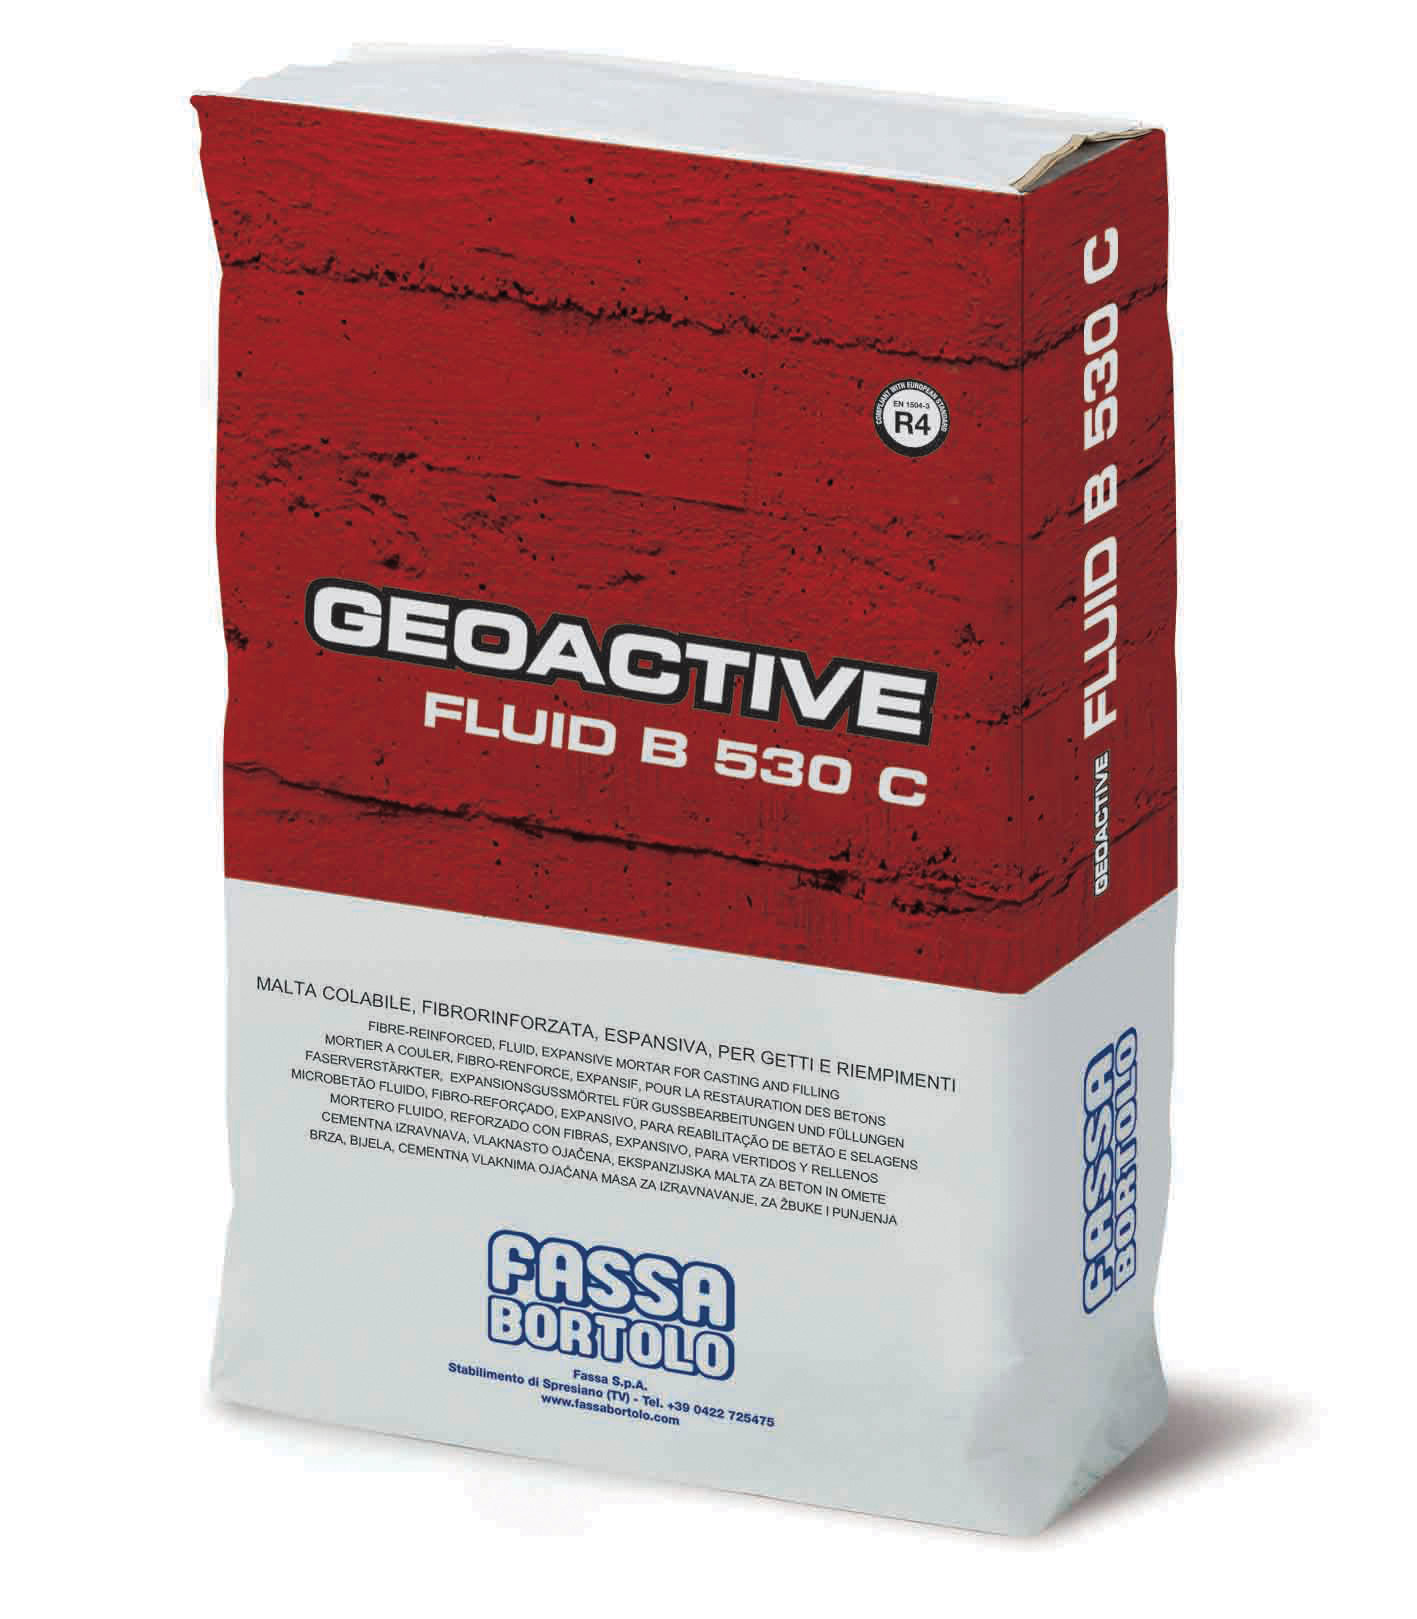 GEOACTIVE FLUID B 530 C